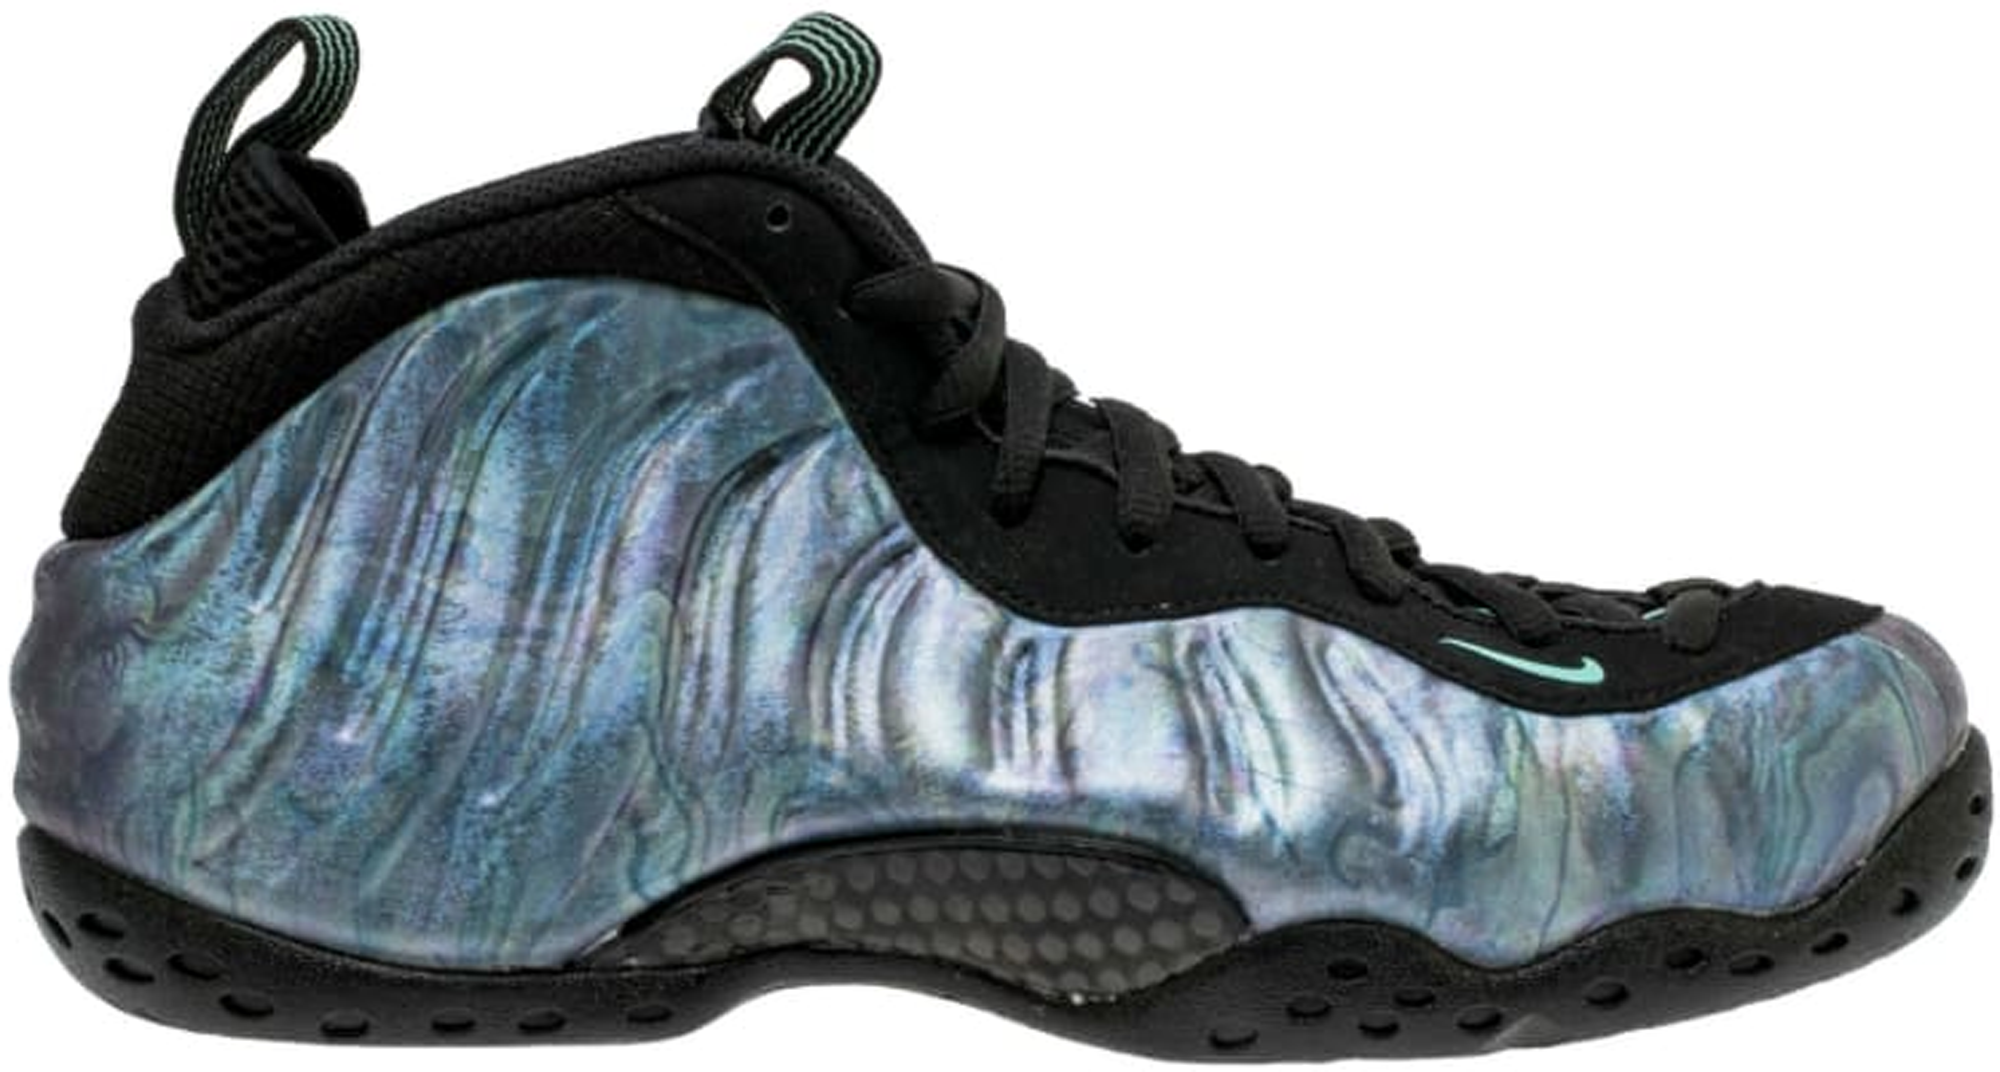 Nike Air Foamposite One Abalone Available Now Nice Kicks